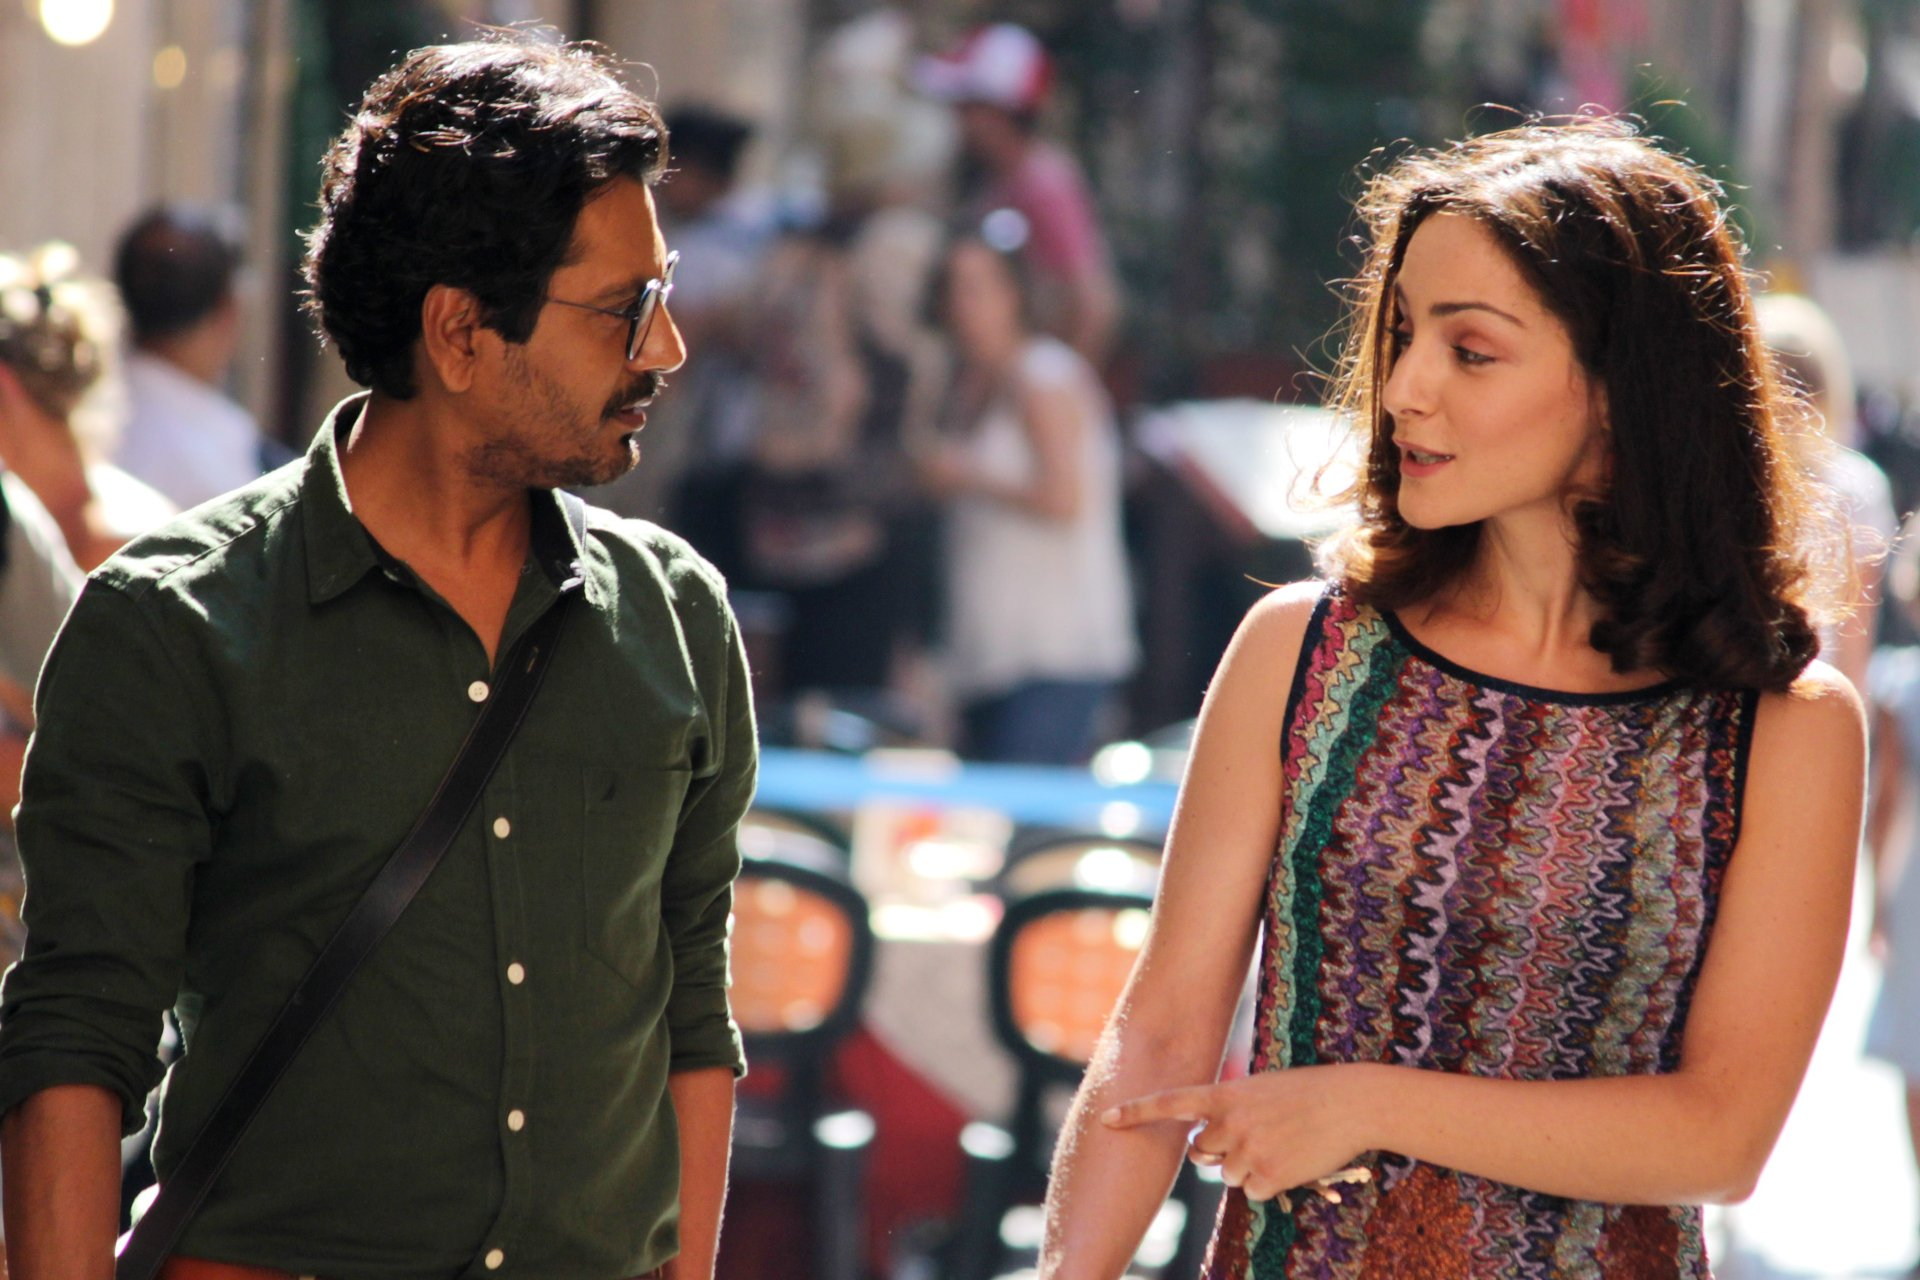 Starring as Reena, director Tannishtha Chatterjee performed the role of producer and actor for Roam Rome Mein. Photo courtesy: Twitter/@romacinemafest